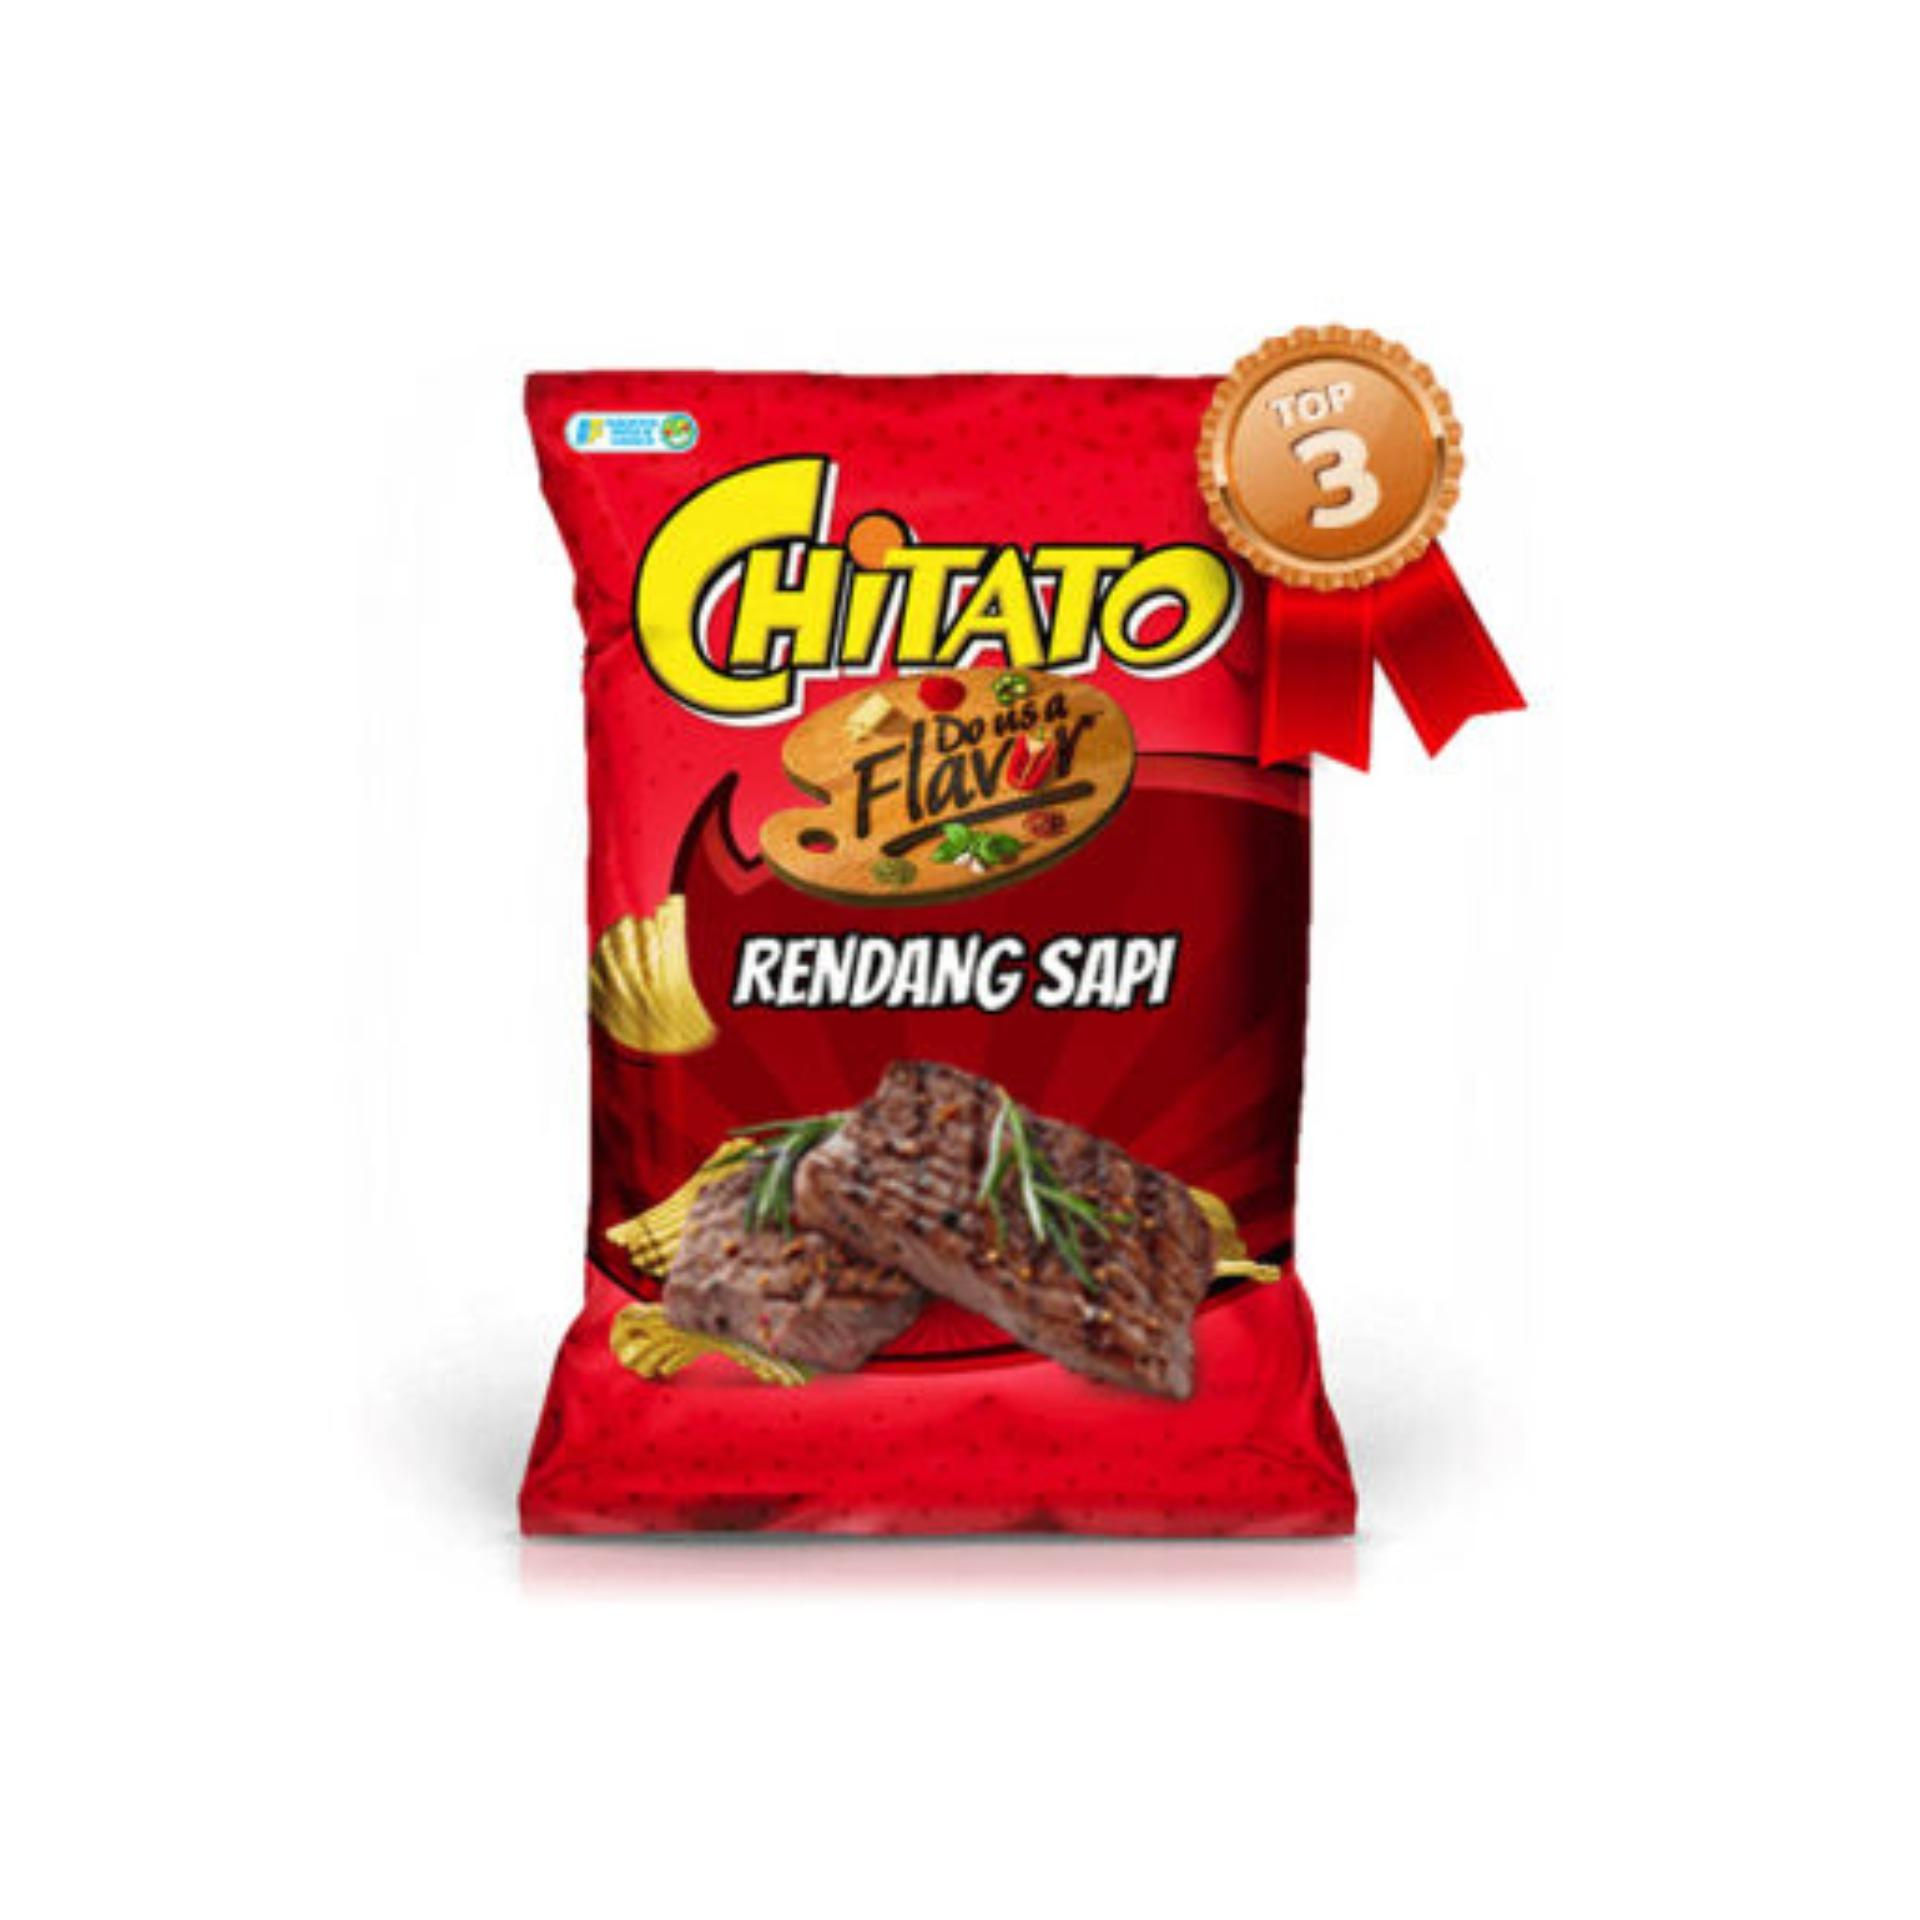 Mamade Makaroni Xtremee Hot Cemilan 160gr Paket 3 pcs Source Snack Kiloan Cheetos By Indofood Rasa